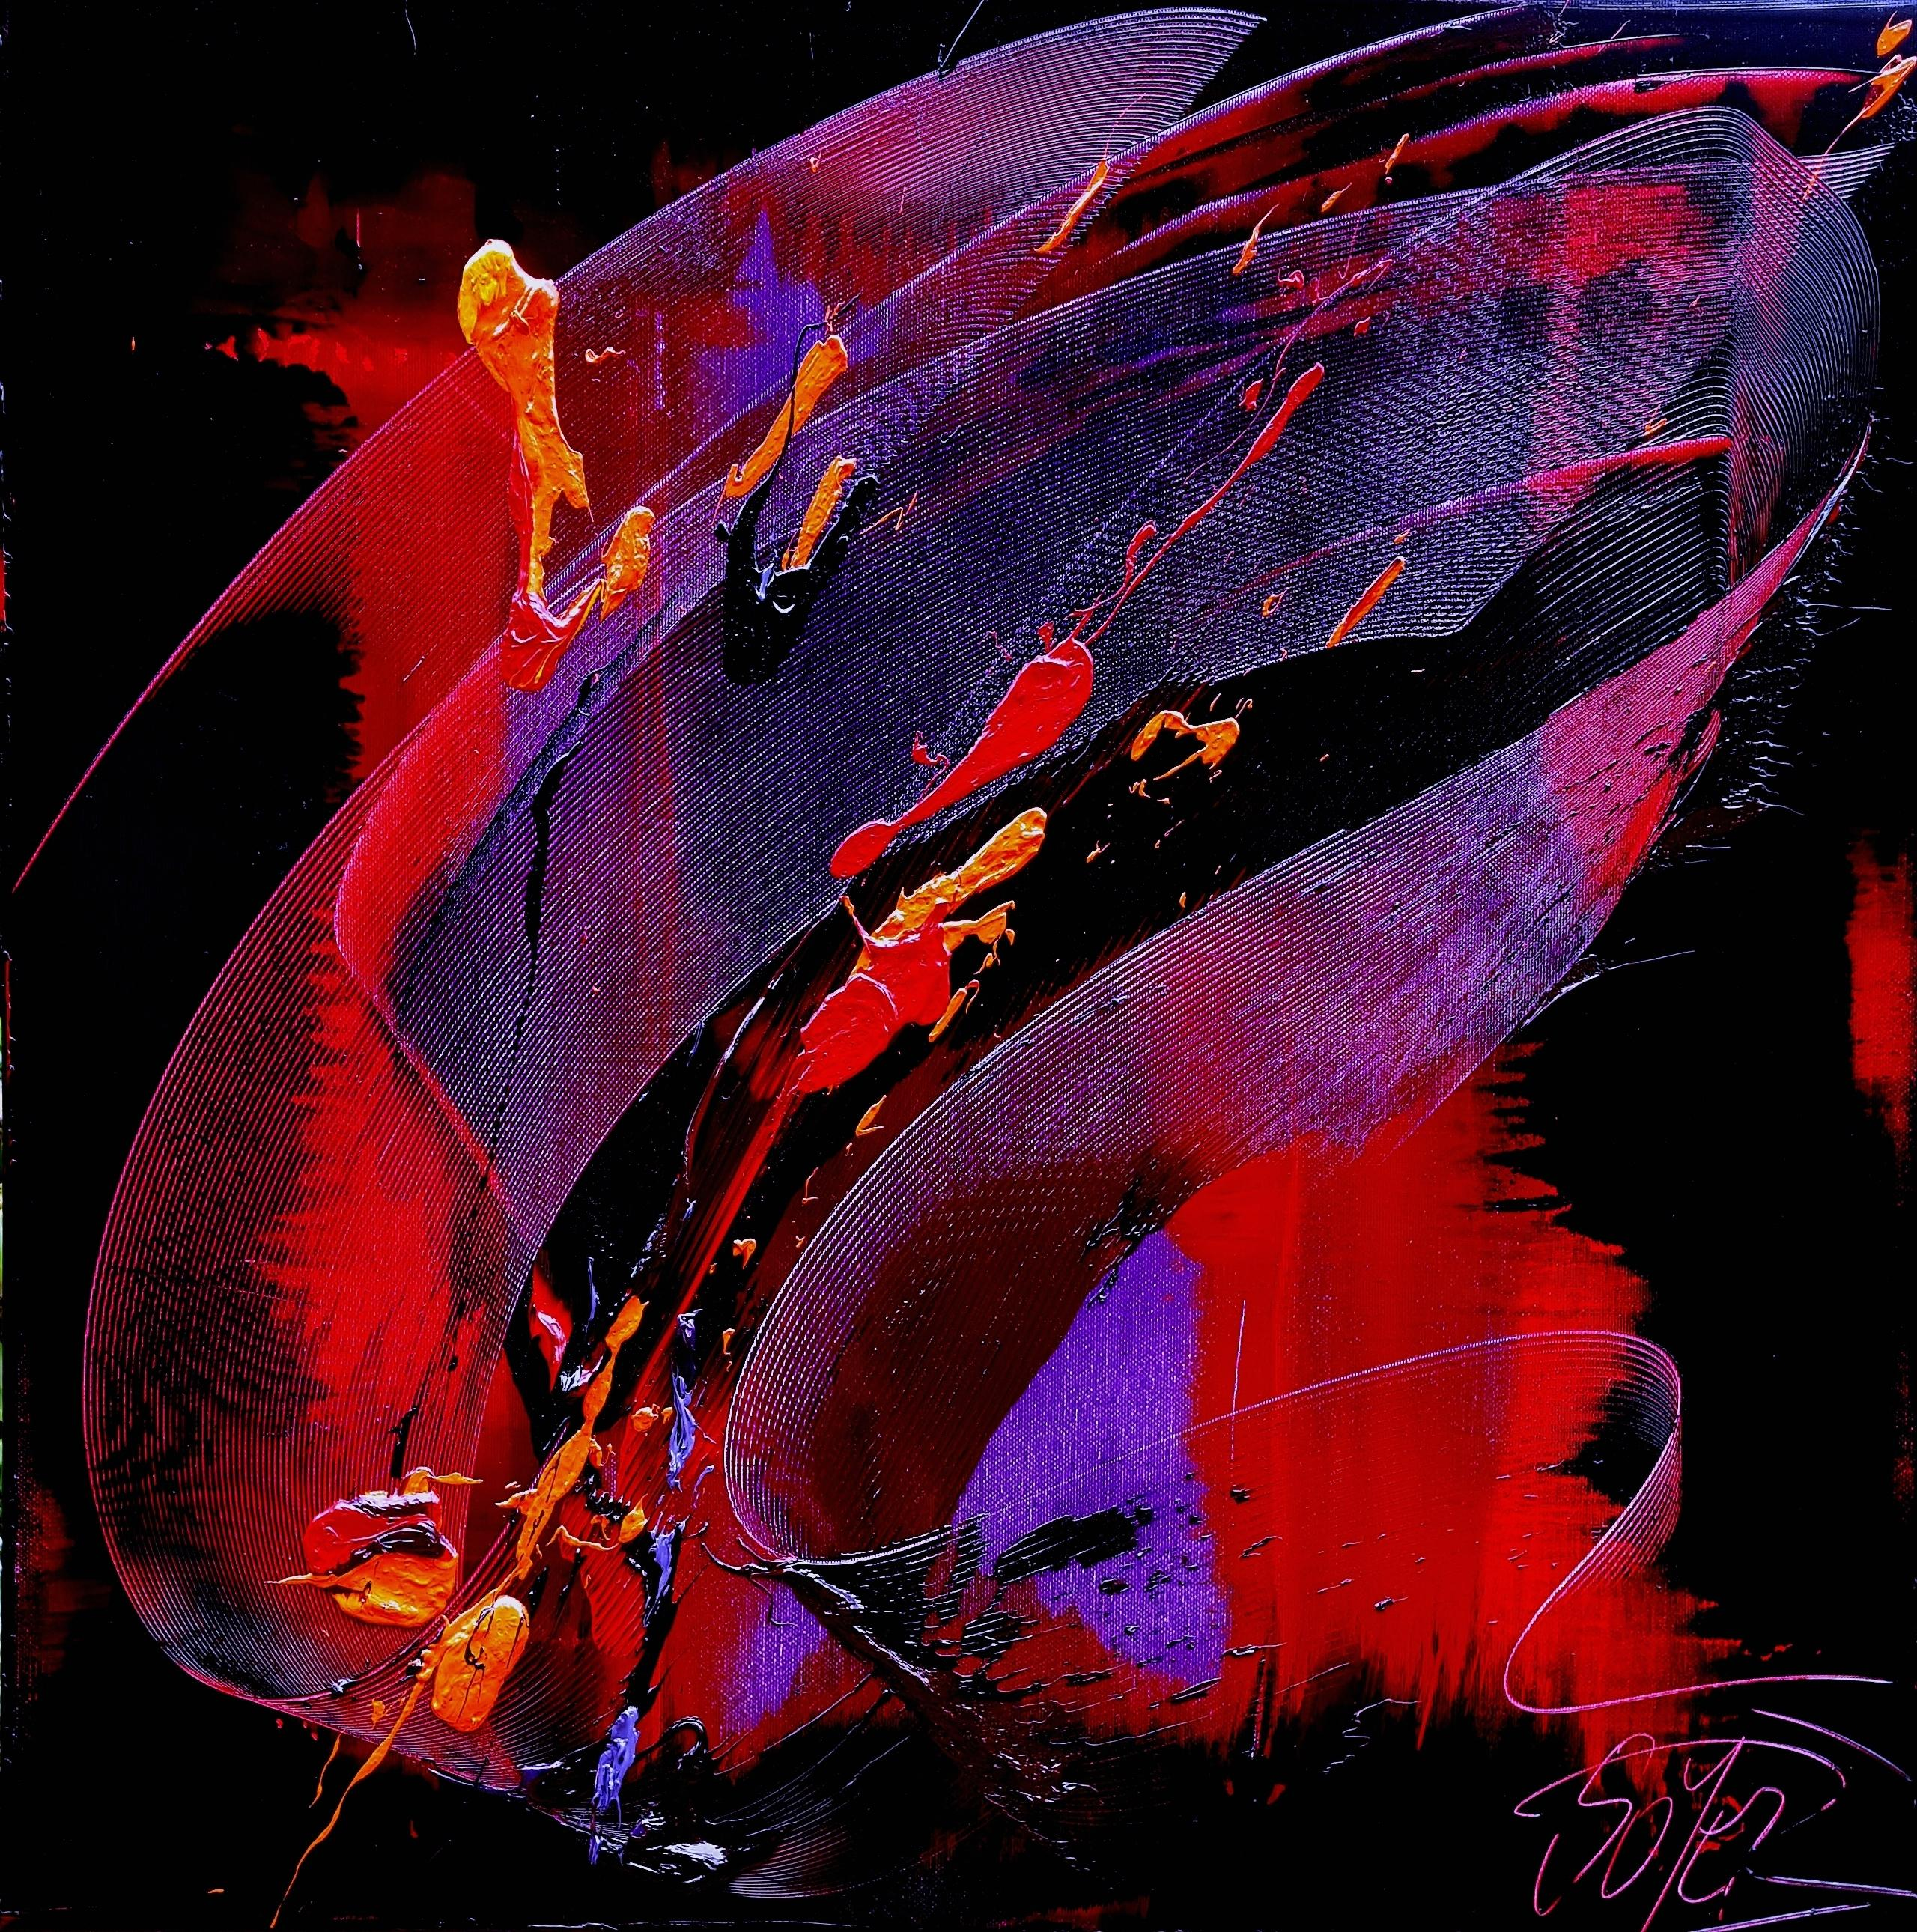 Purple, Red, Orange and Black Gestural Abstract Oil Painting